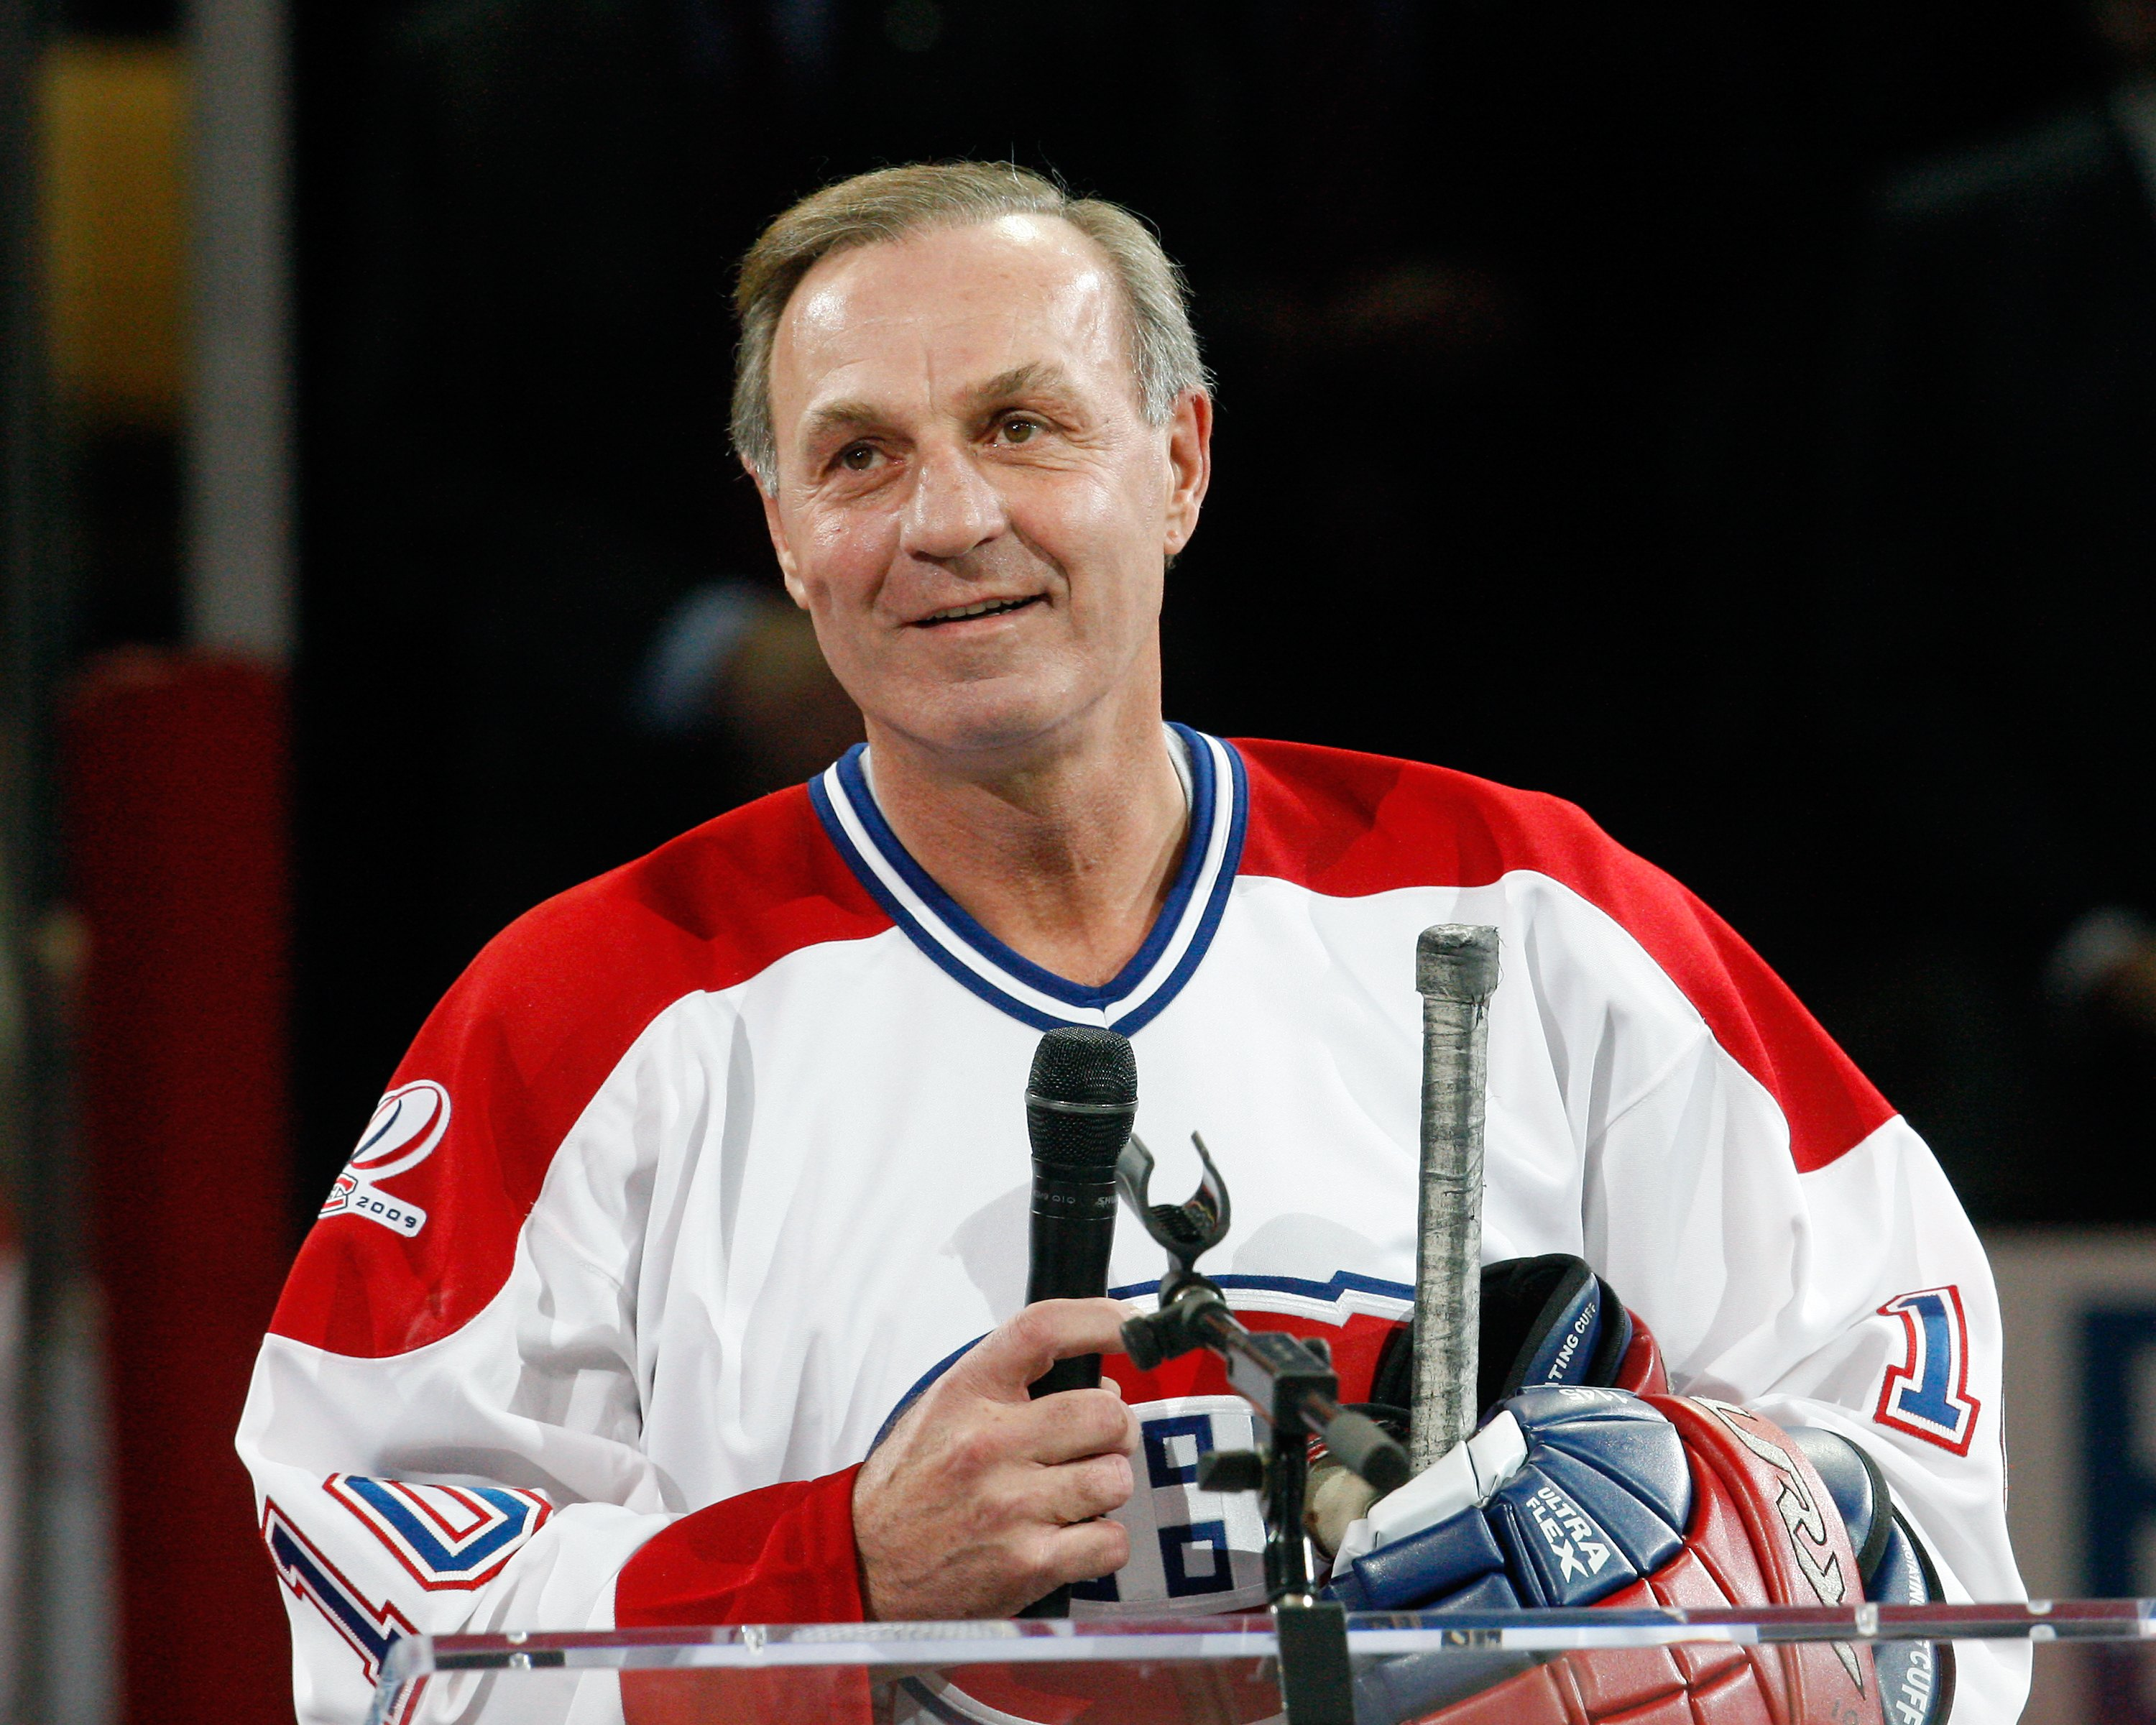 MONTREAL- DECEMBER 4:  Former Montreal Canadien Guy Lafleur speaks to fans during the Centennial Celebration ceremonies prior to the NHL game between the Montreal Canadiens and Boston Bruins on December 4, 2009 at the Bell Centre in Montreal, Quebec, Cana